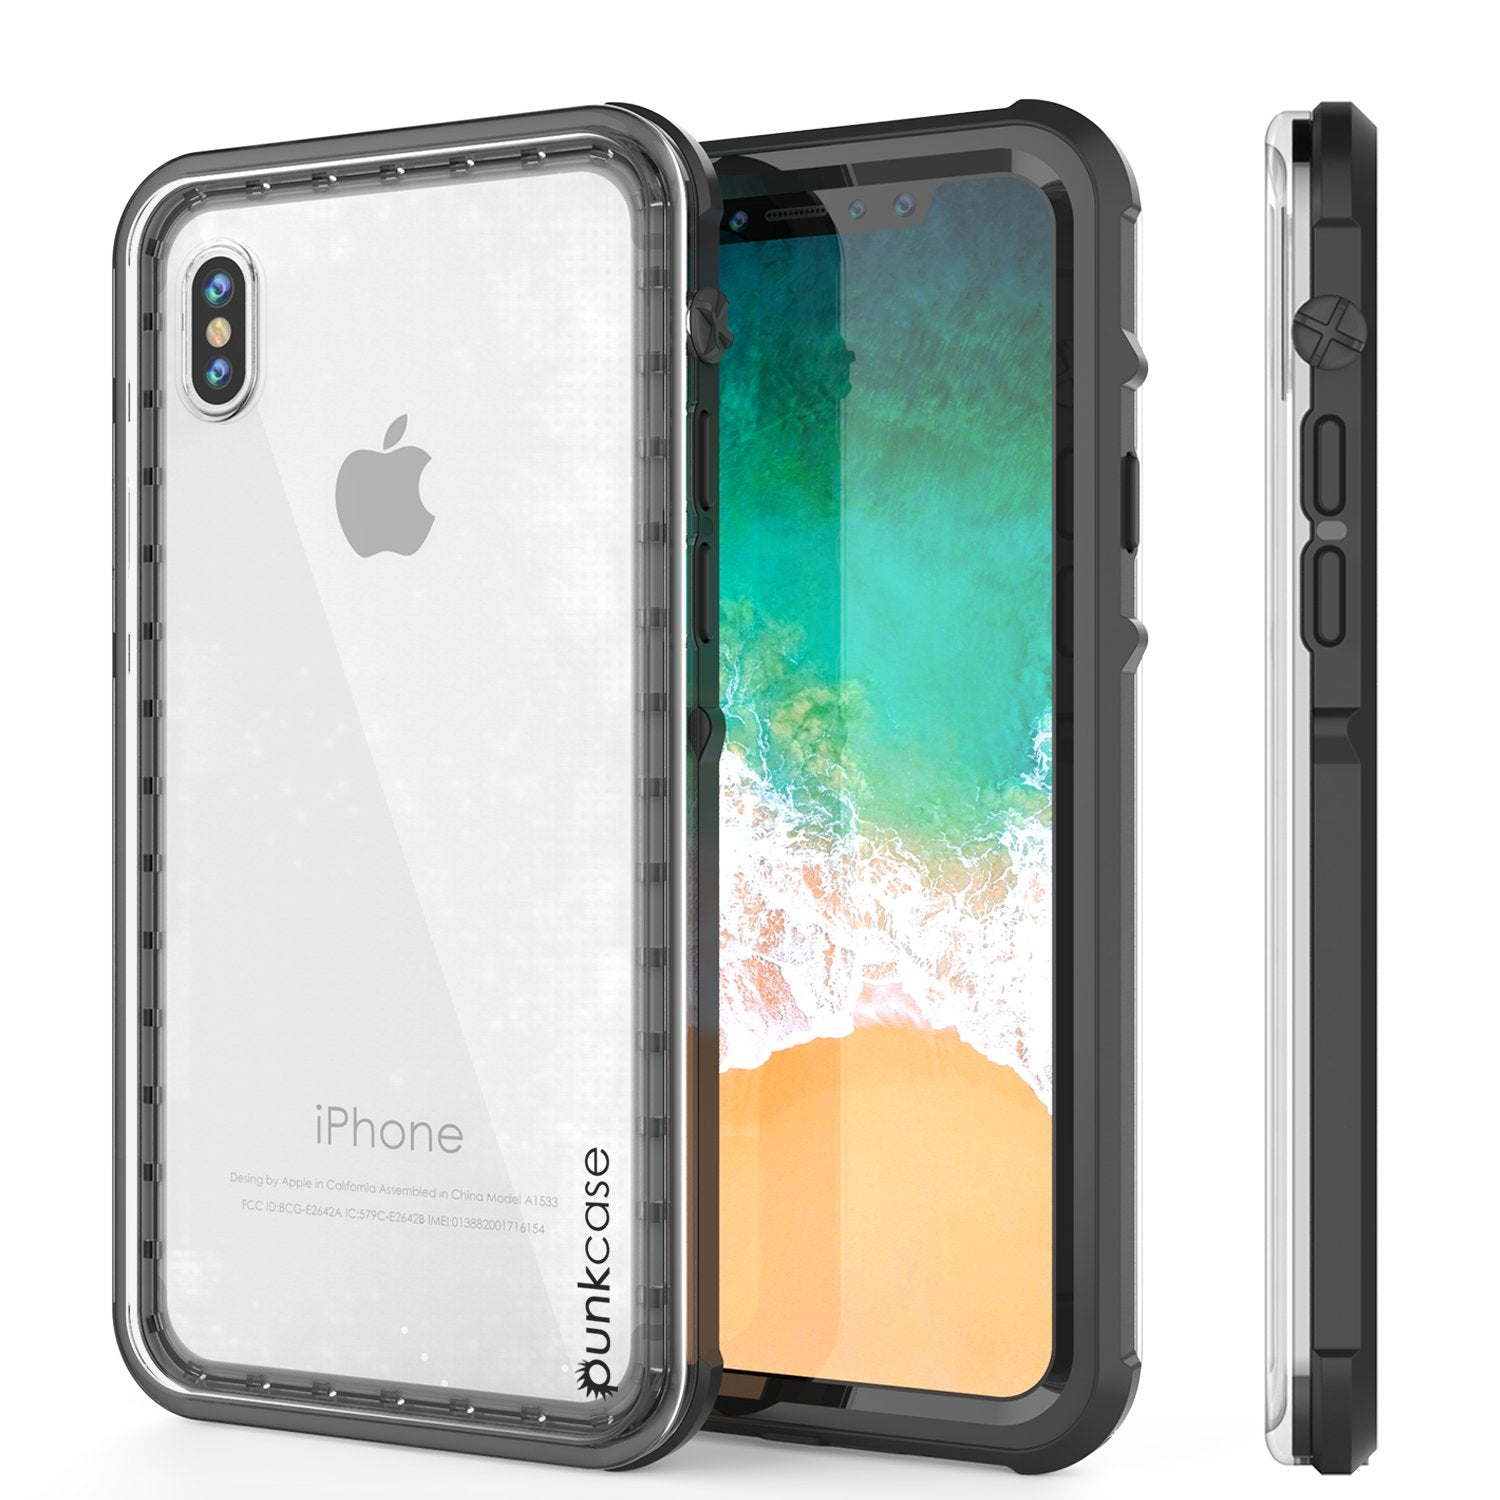 iPhone X Case, Punkcase CRYSTAL SERIES Cover W/Screen Protector, BLACK